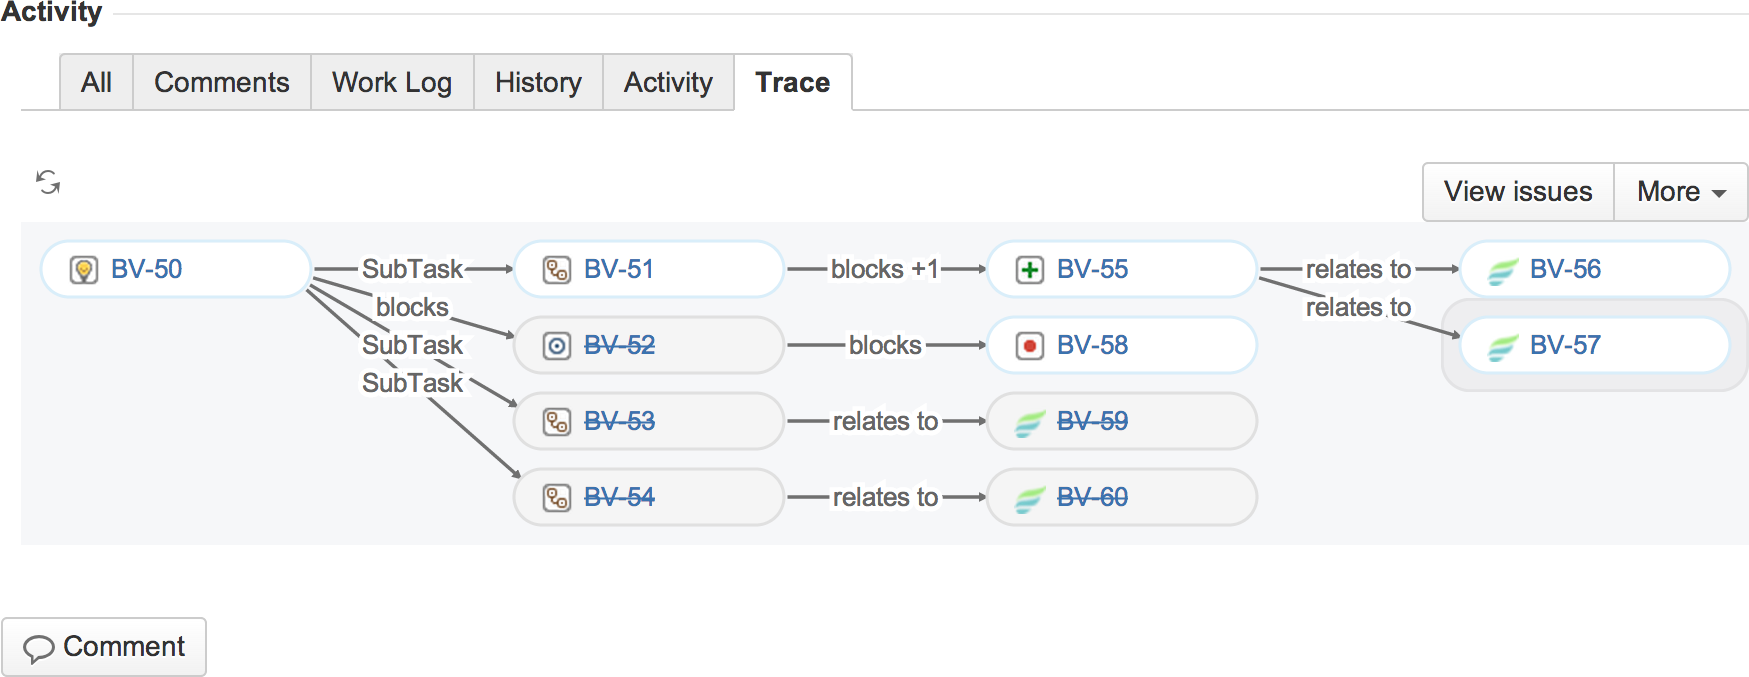 Figure: The Issue Relation Graph within JIRA issue views